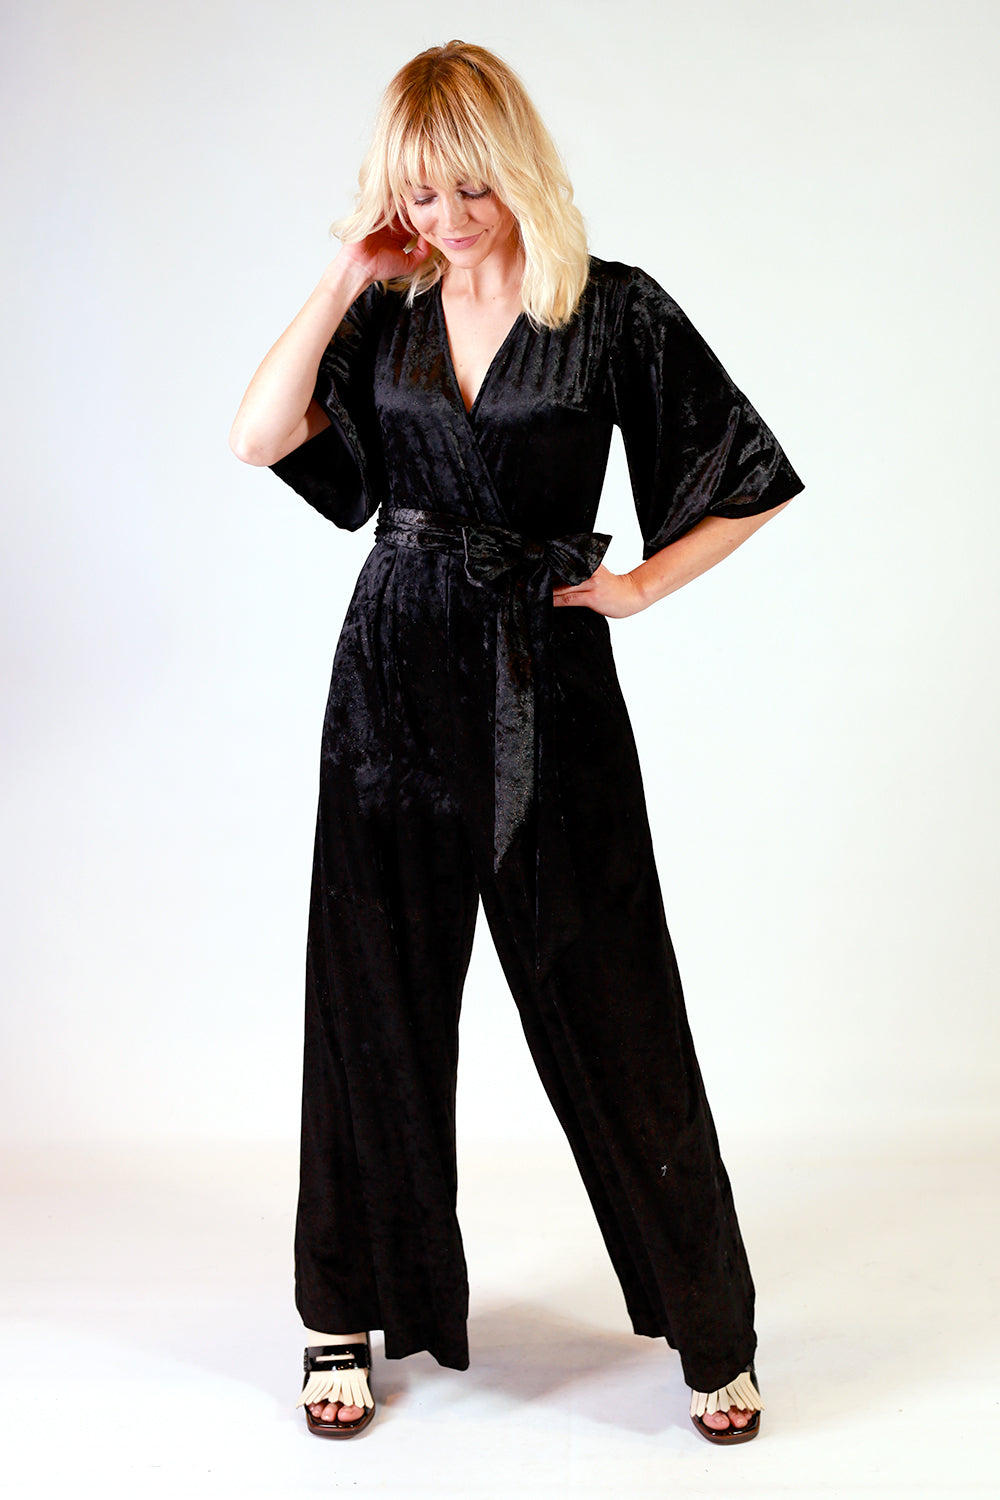 Riley Velvet Jumpsuit Young And Resolute Y R Velvet Jumpsuit Gold Black Jumpsuit Annah Stretton